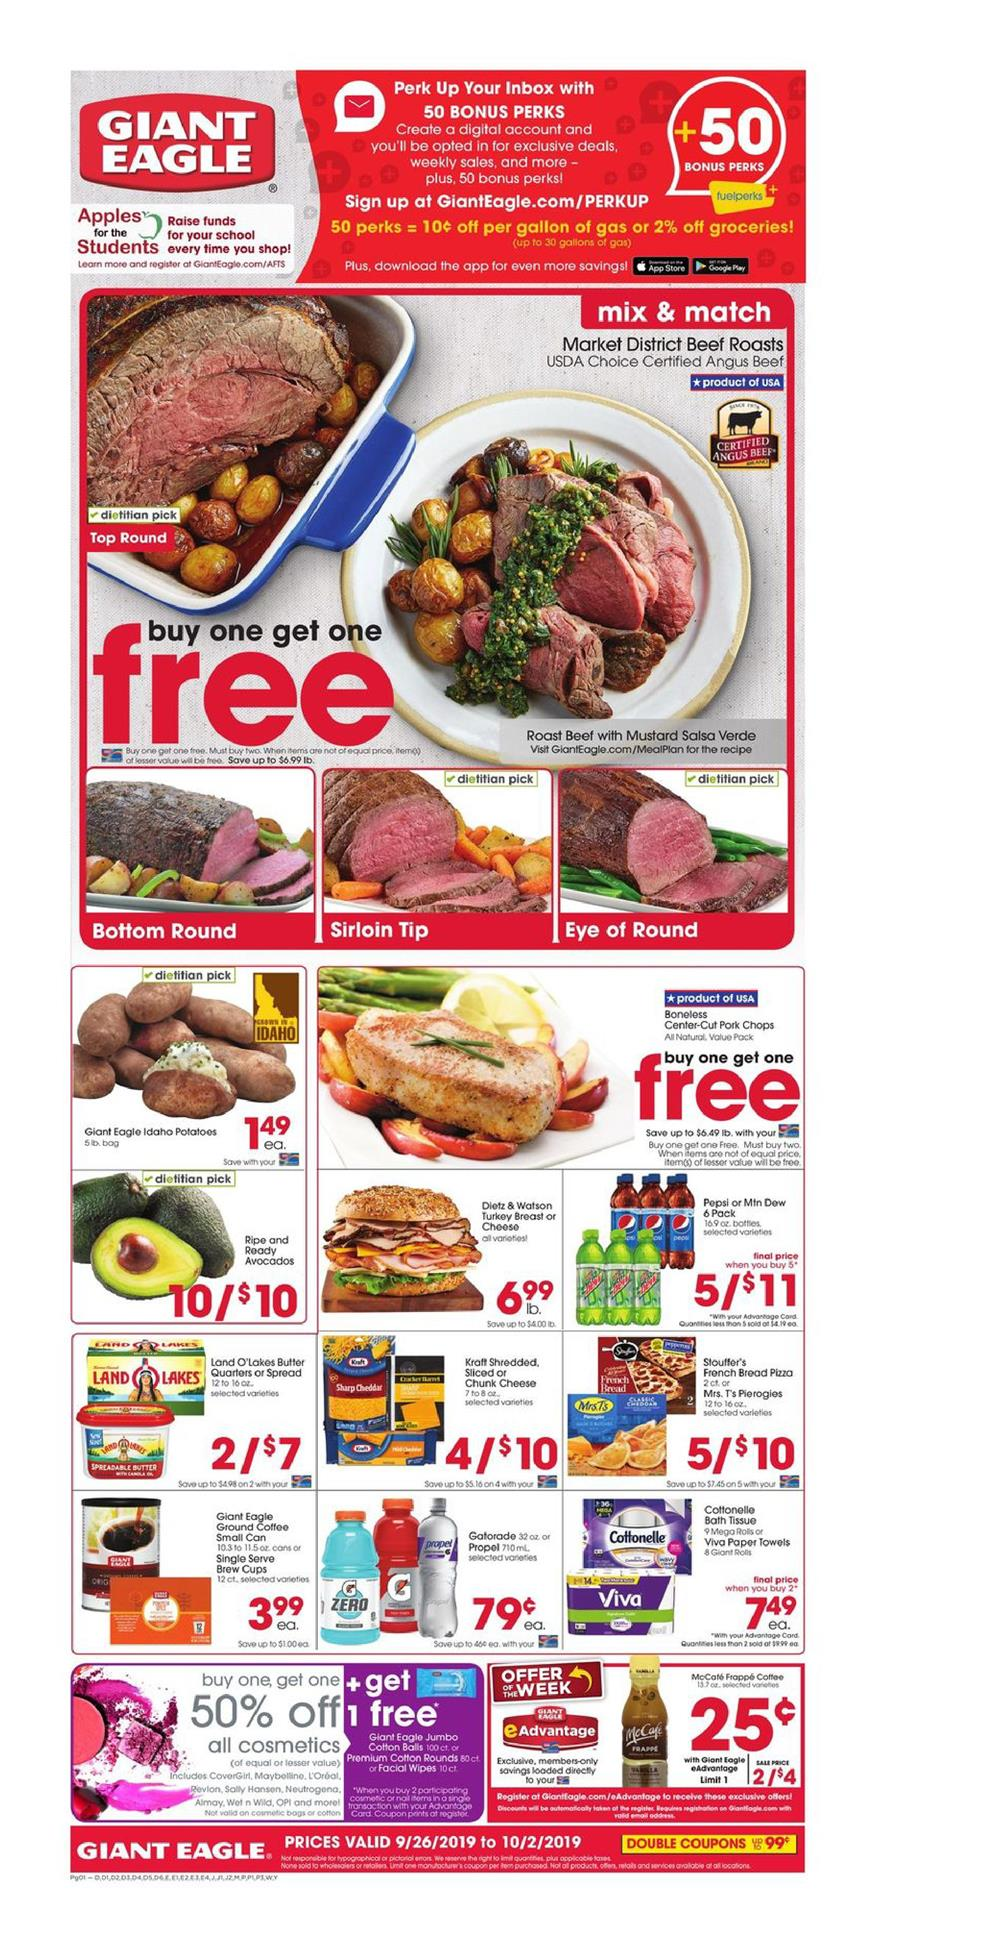 Giant Eagle Coupon Policy